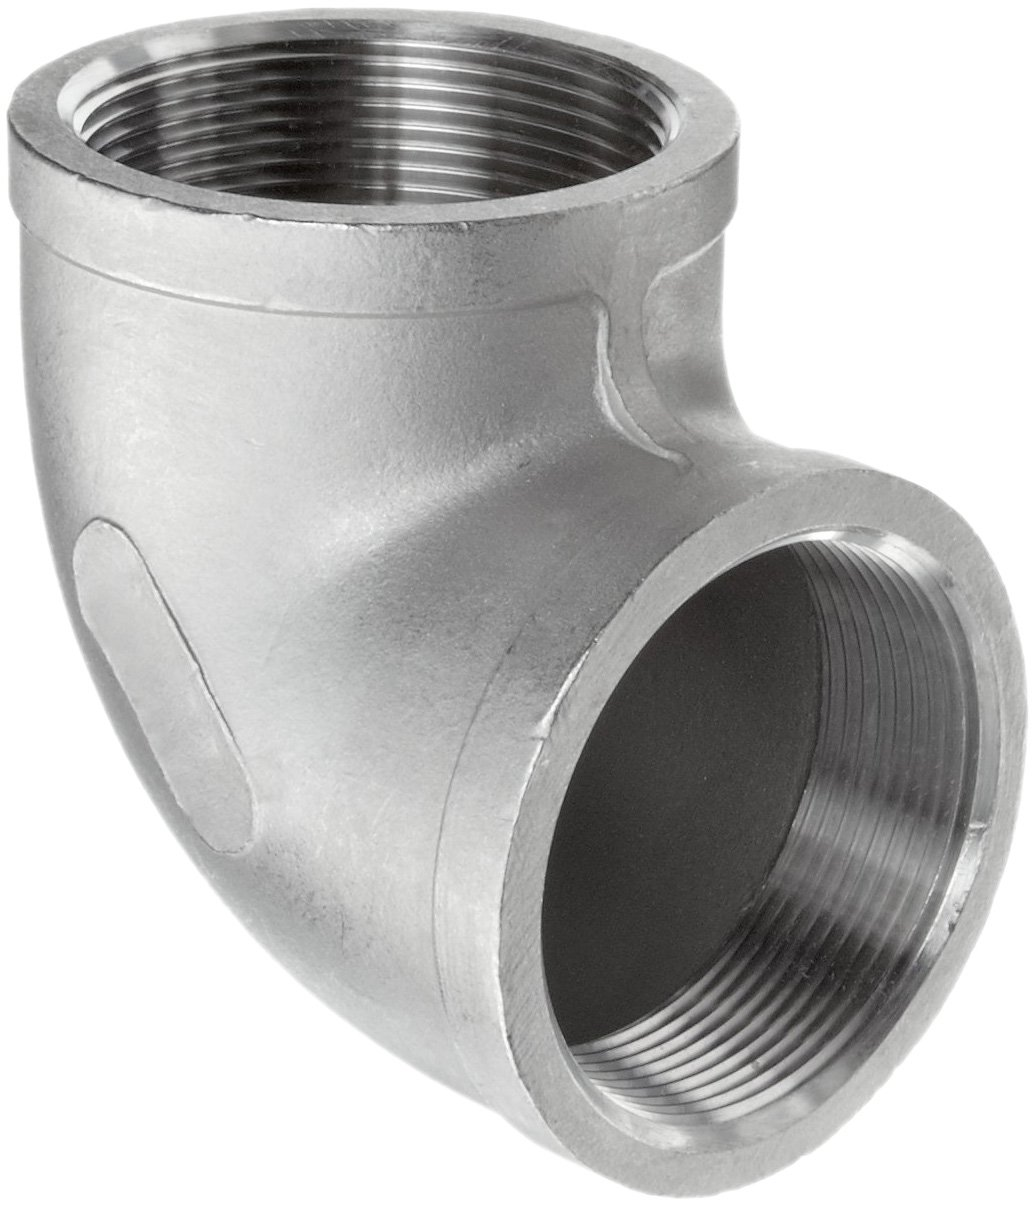 Stainless Steel 304 Cast Pipe Fitting 90 Degree Elbow Class 150 1 Pipa Stenlis 2 Npt Female Industrial Fittings Scientific